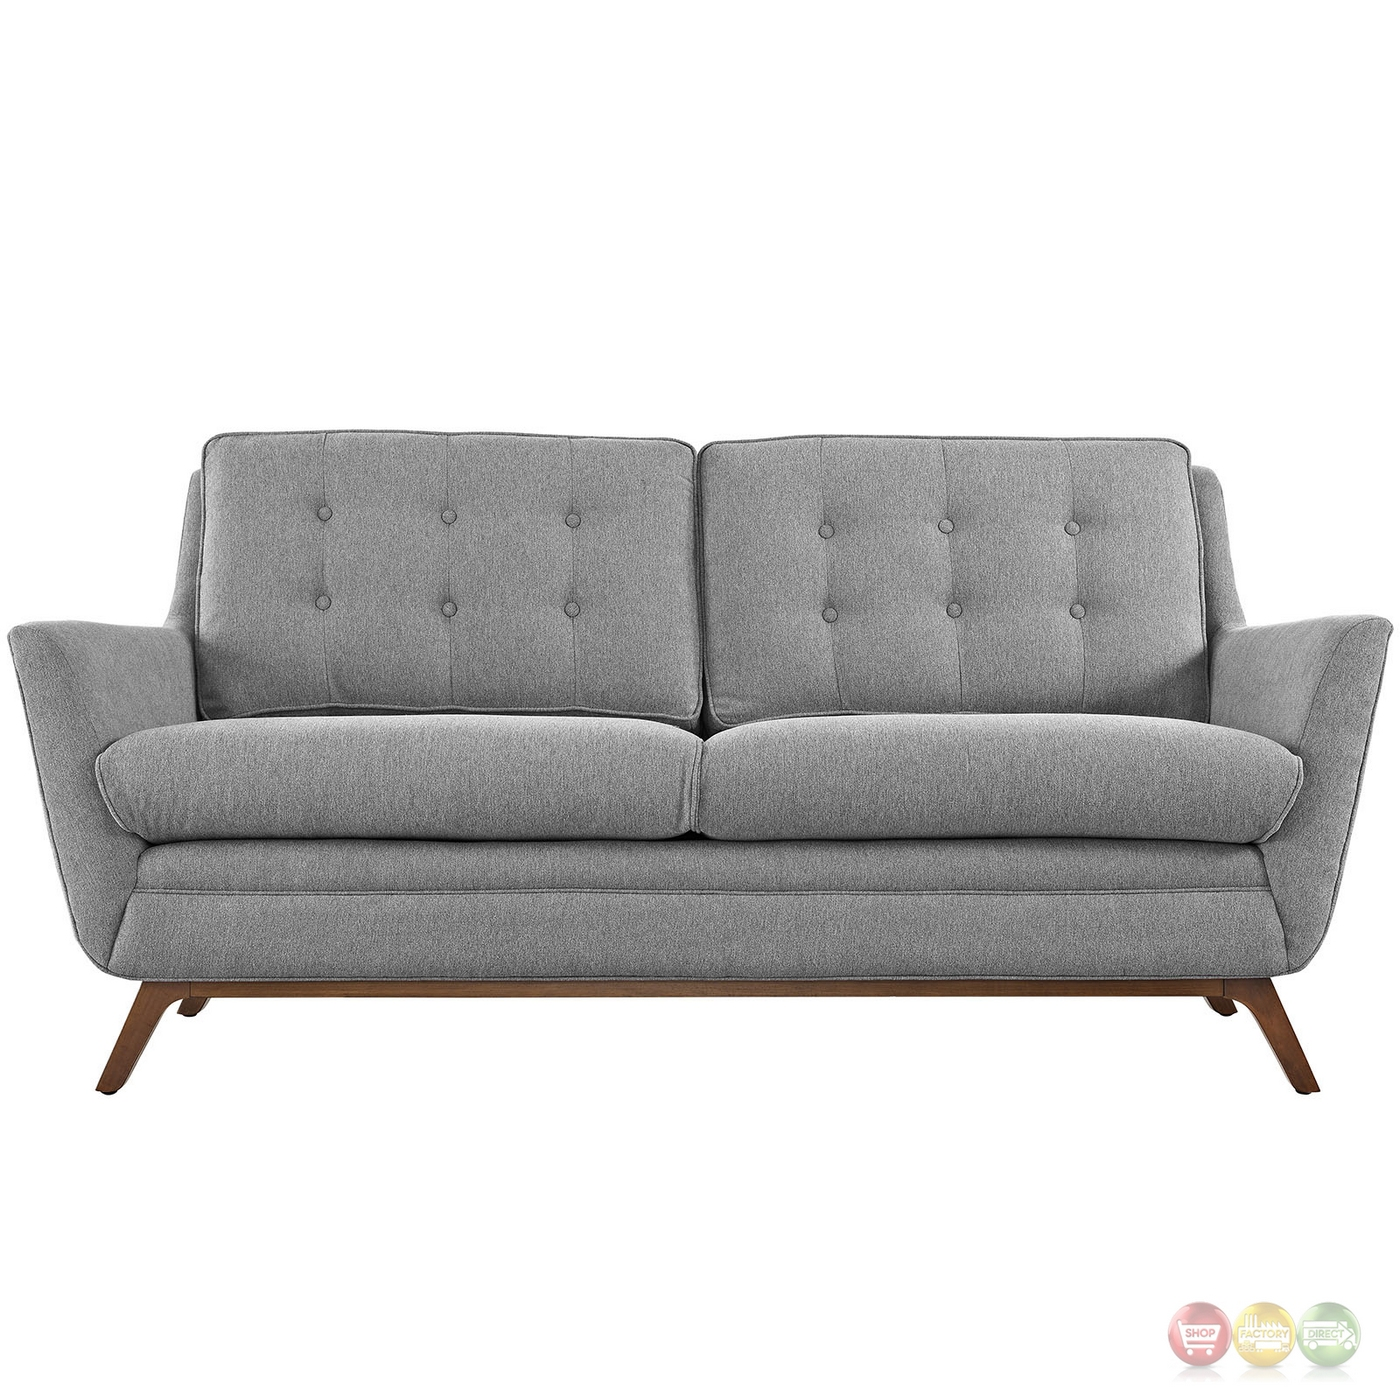 Beguile Contemporary Button Tufted Upholstered Loveseat Expectation Gray